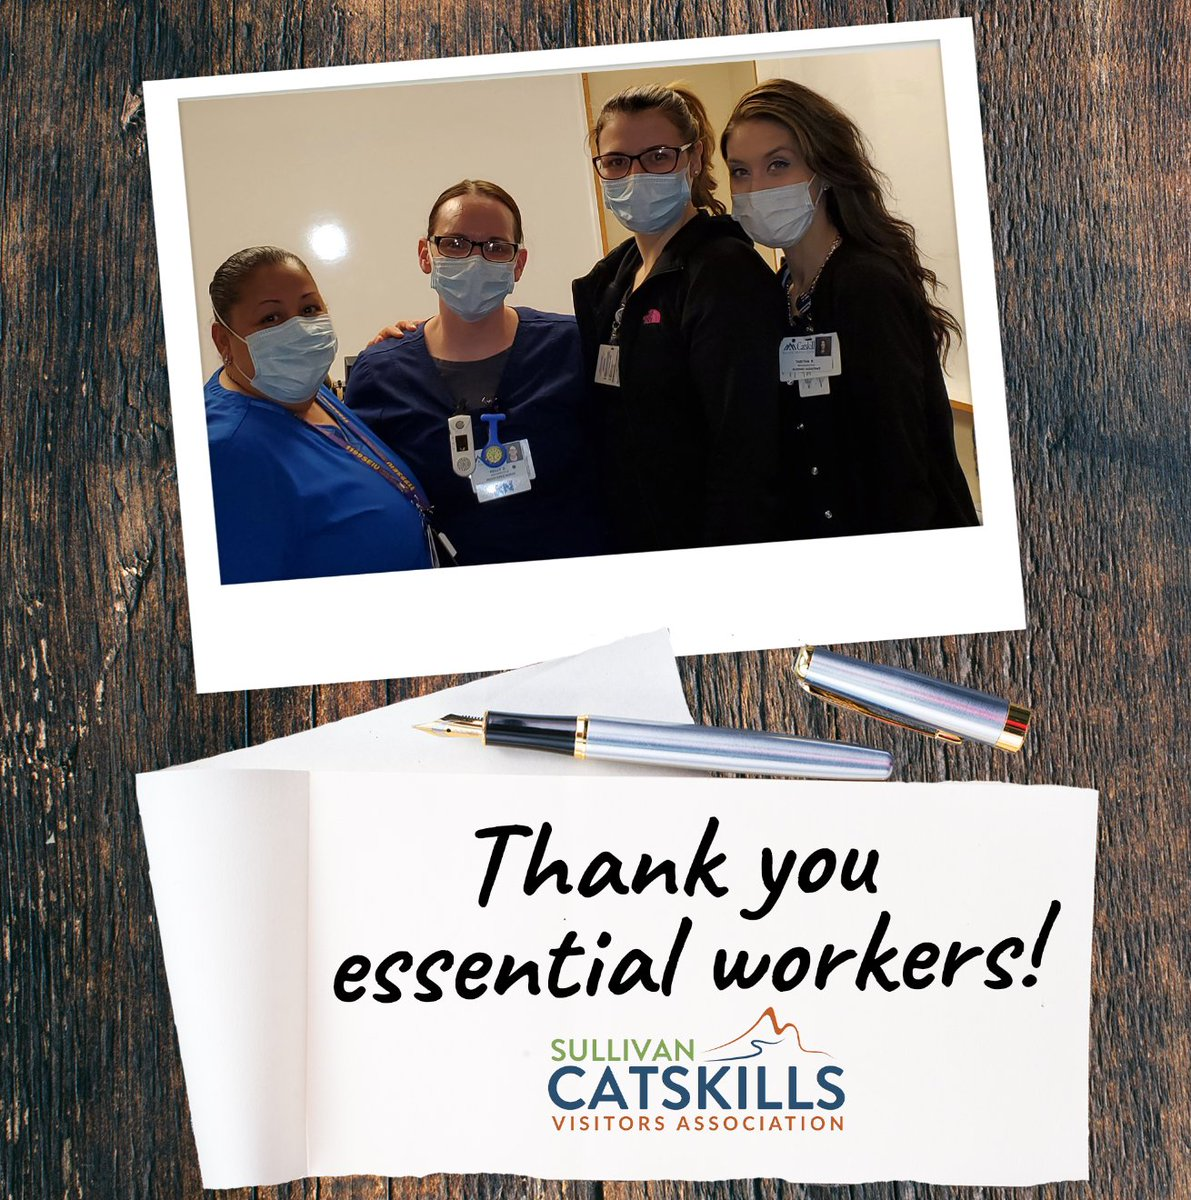 For all you do, we're so thankful to the team at the Catskill Regional Medical Center / CRMC. Thank you ladies #SullivanCatskills  #EssentialHeroes #ILoveNY pic.twitter.com/q1ieVX1FSq